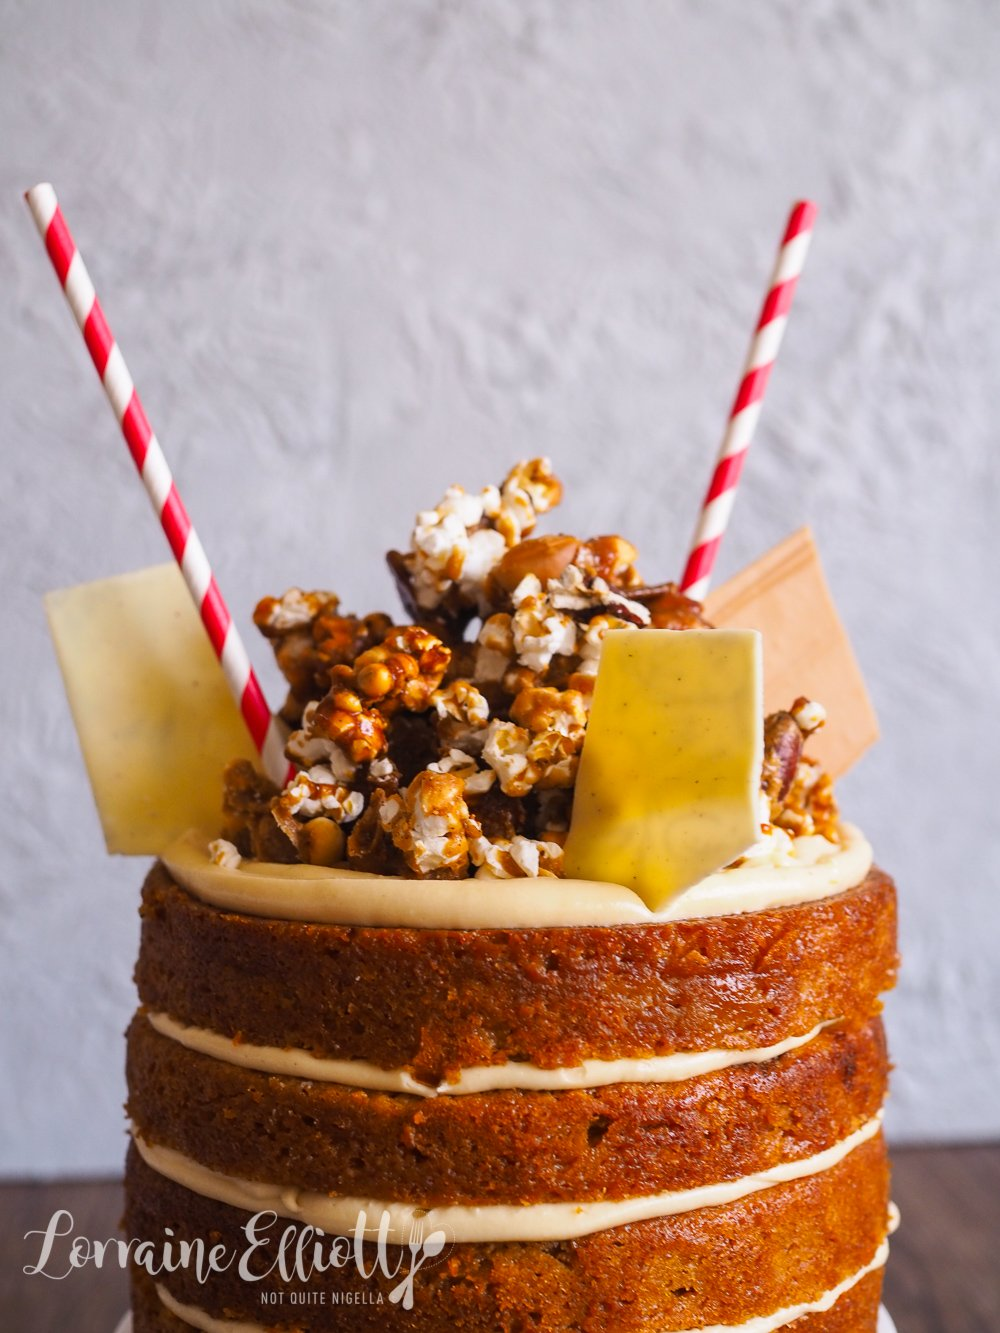 Vanilla Malt Layer Cake